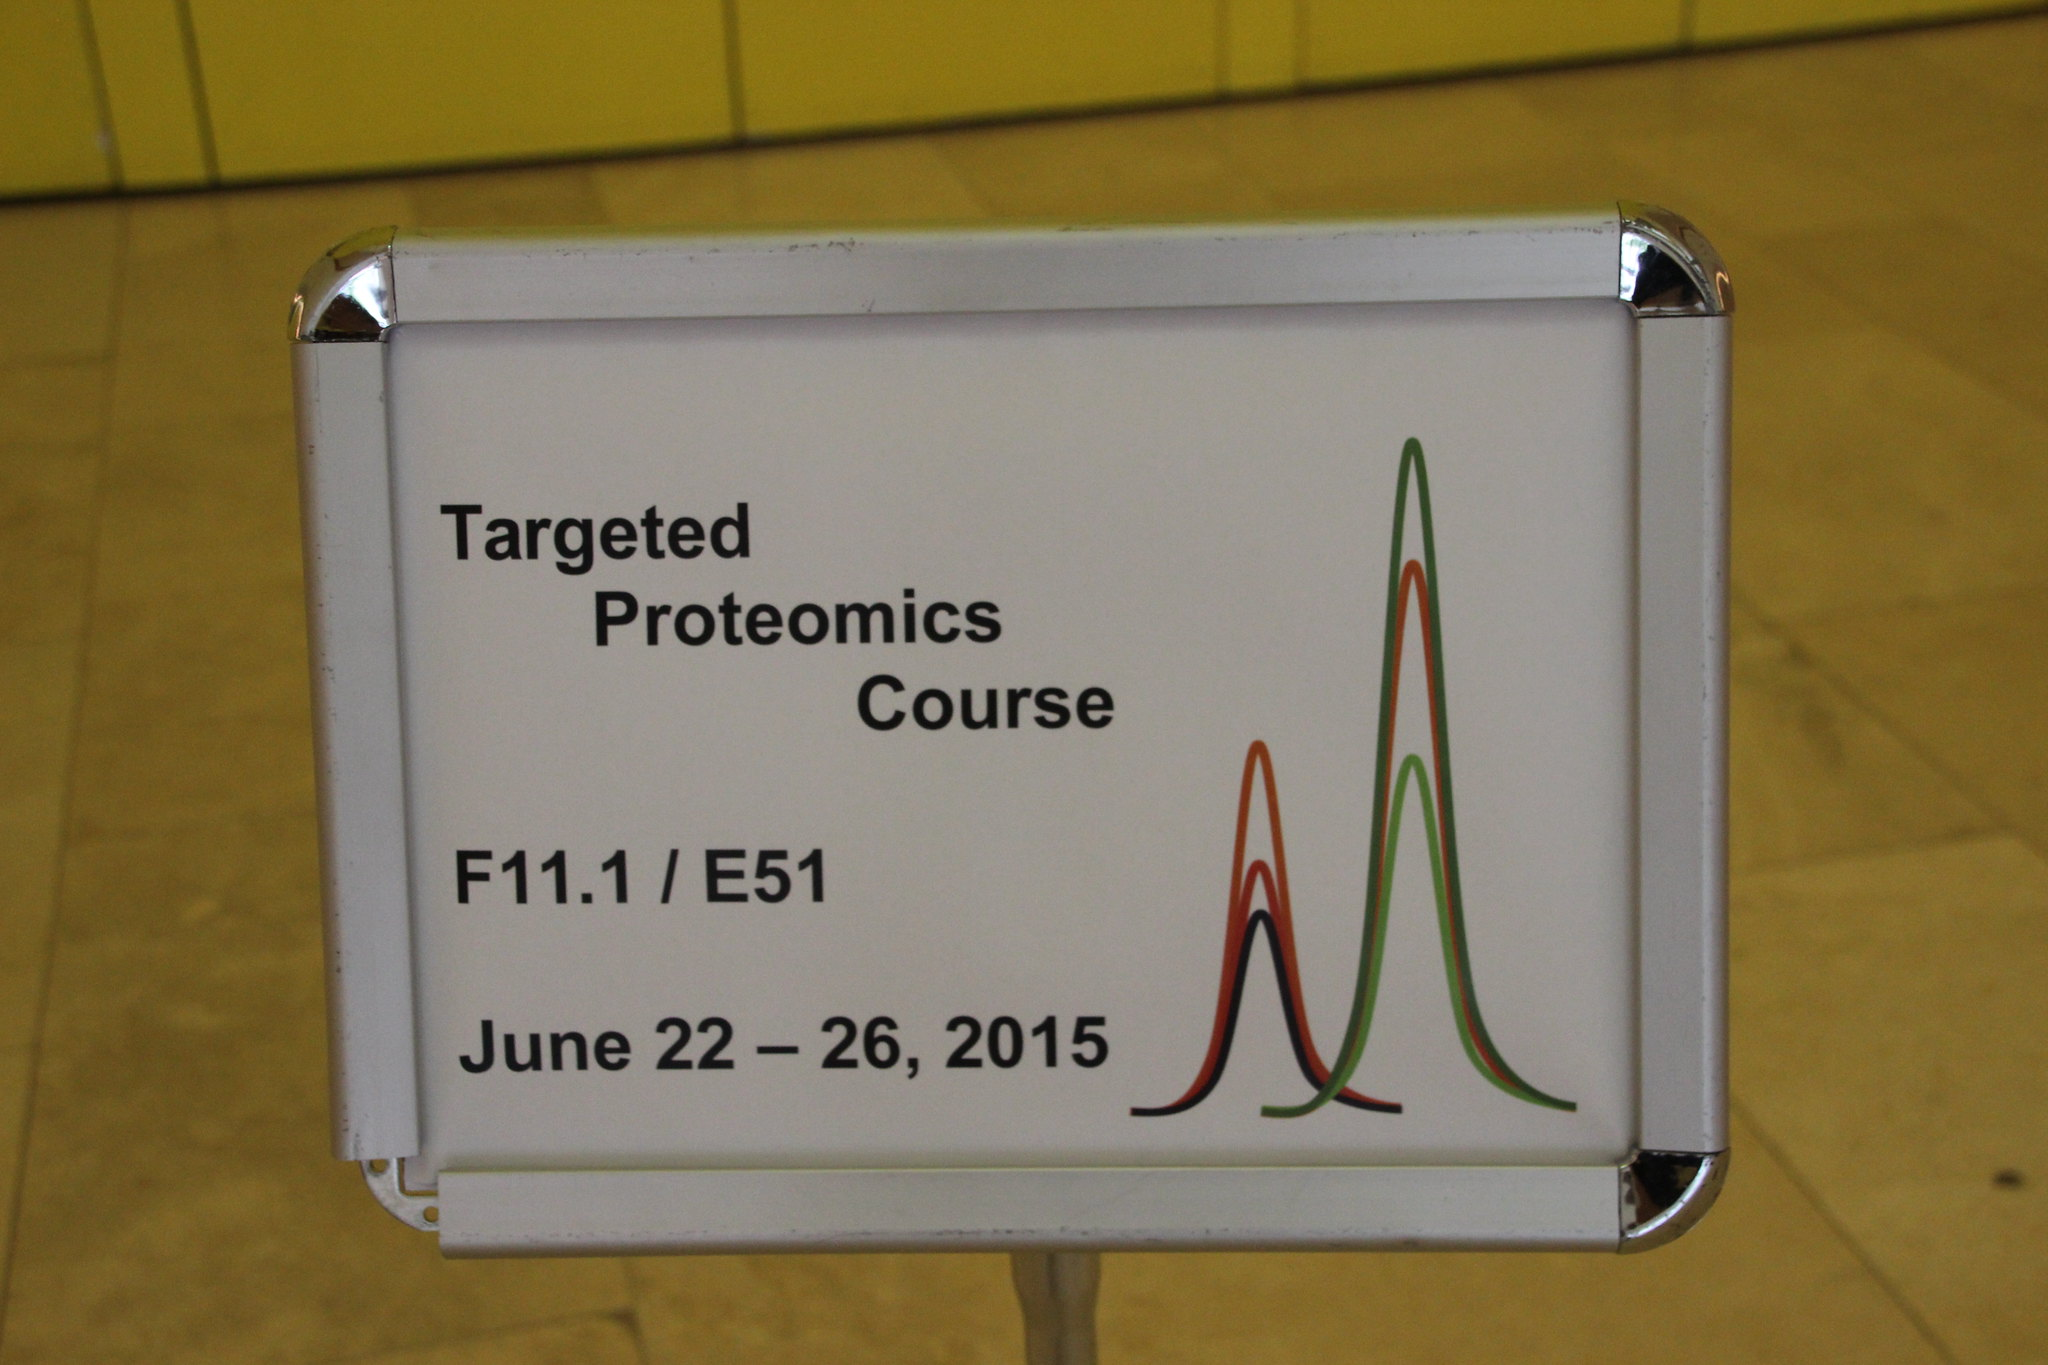 Targeted Proteomics Course 2015